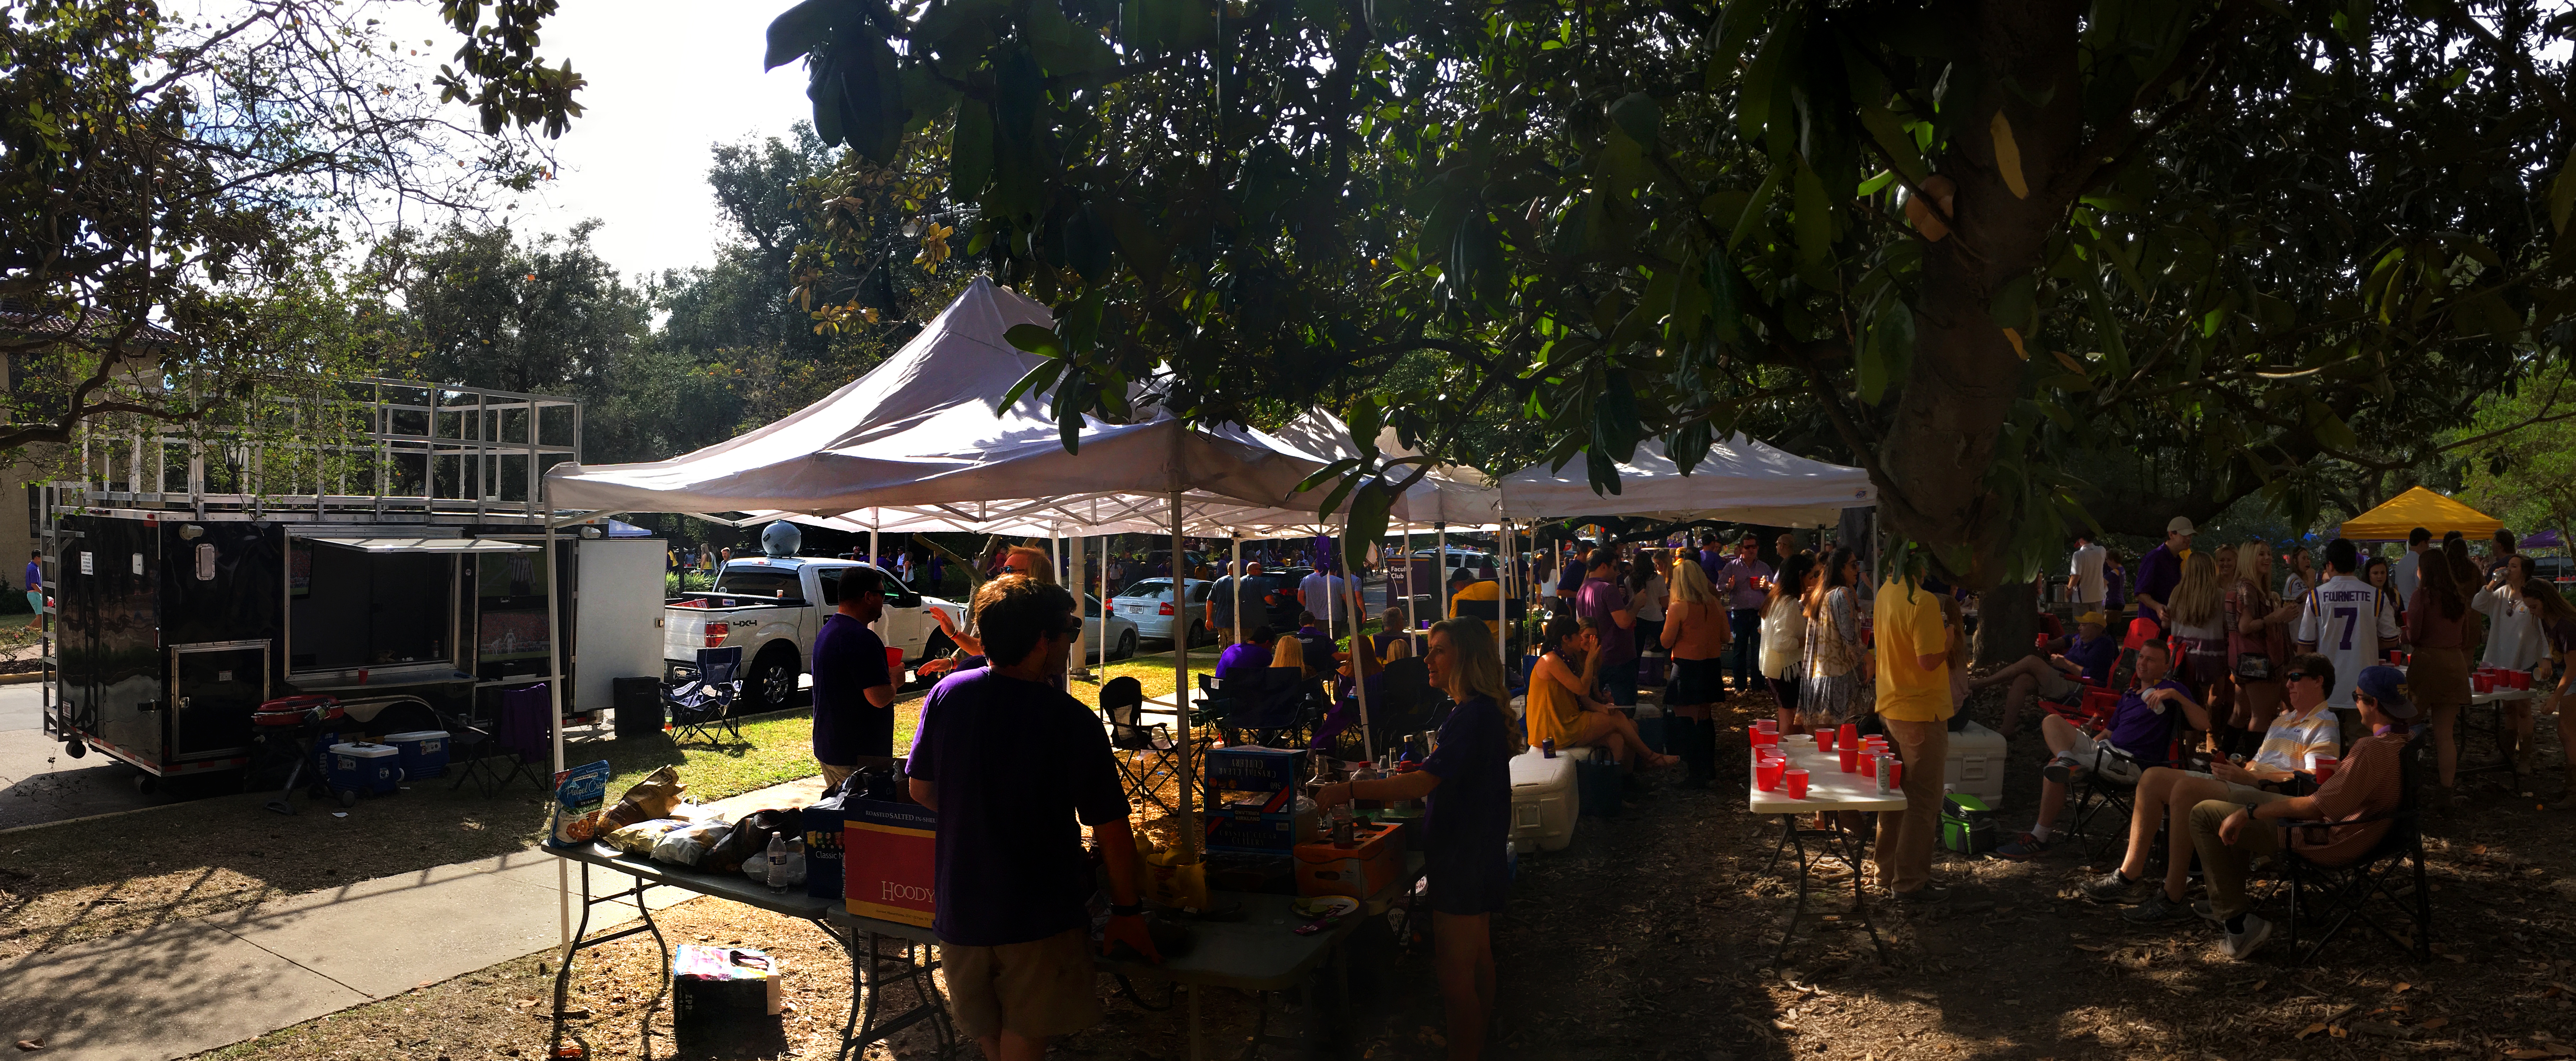 tailgate-services-tailgate-trailers-lsu-baton-rouge